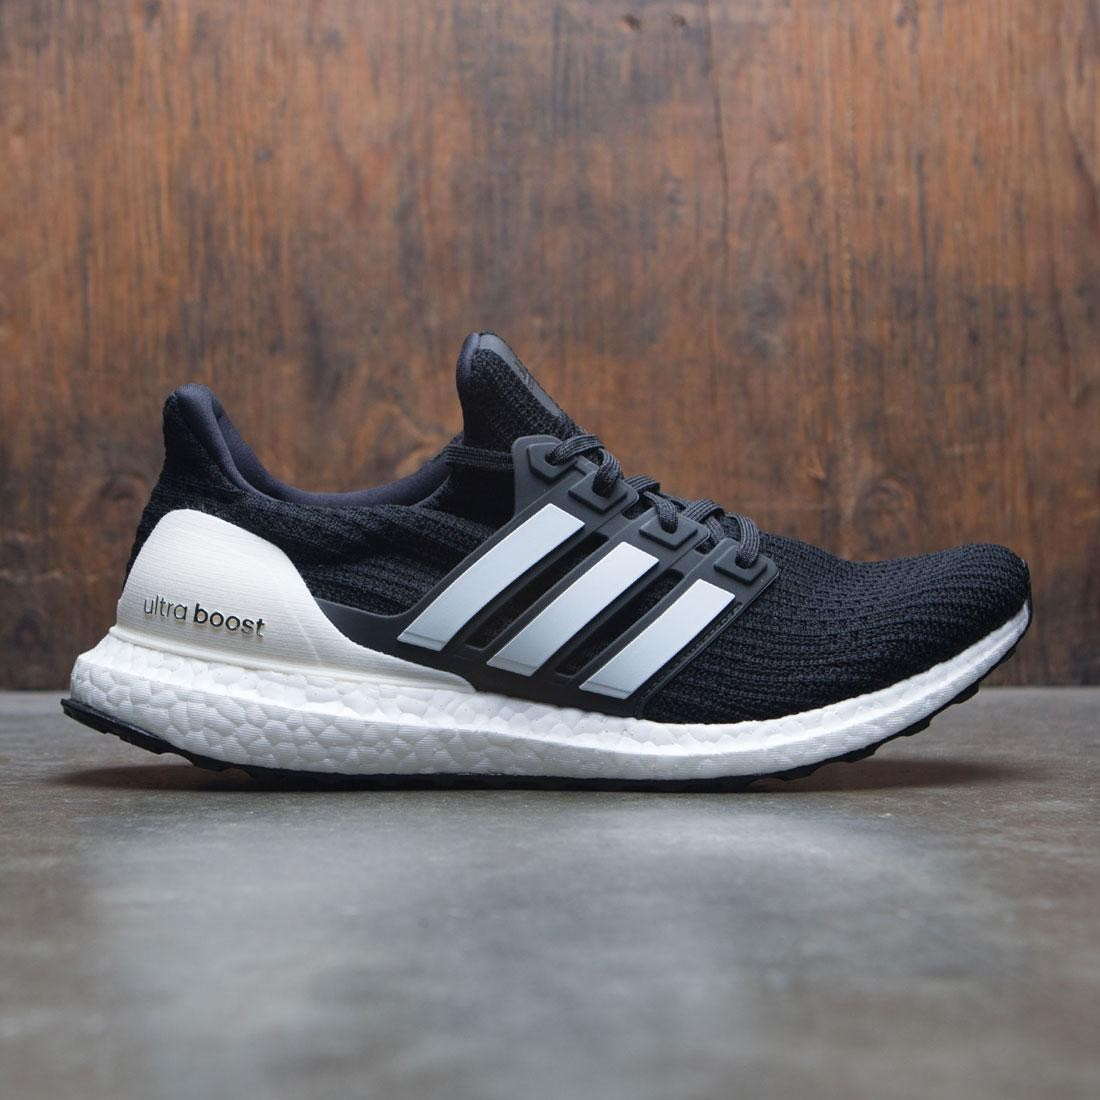 taille 40 204a8 77f46 Adidas Men UltraBOOST (black / cloud white / carbon)